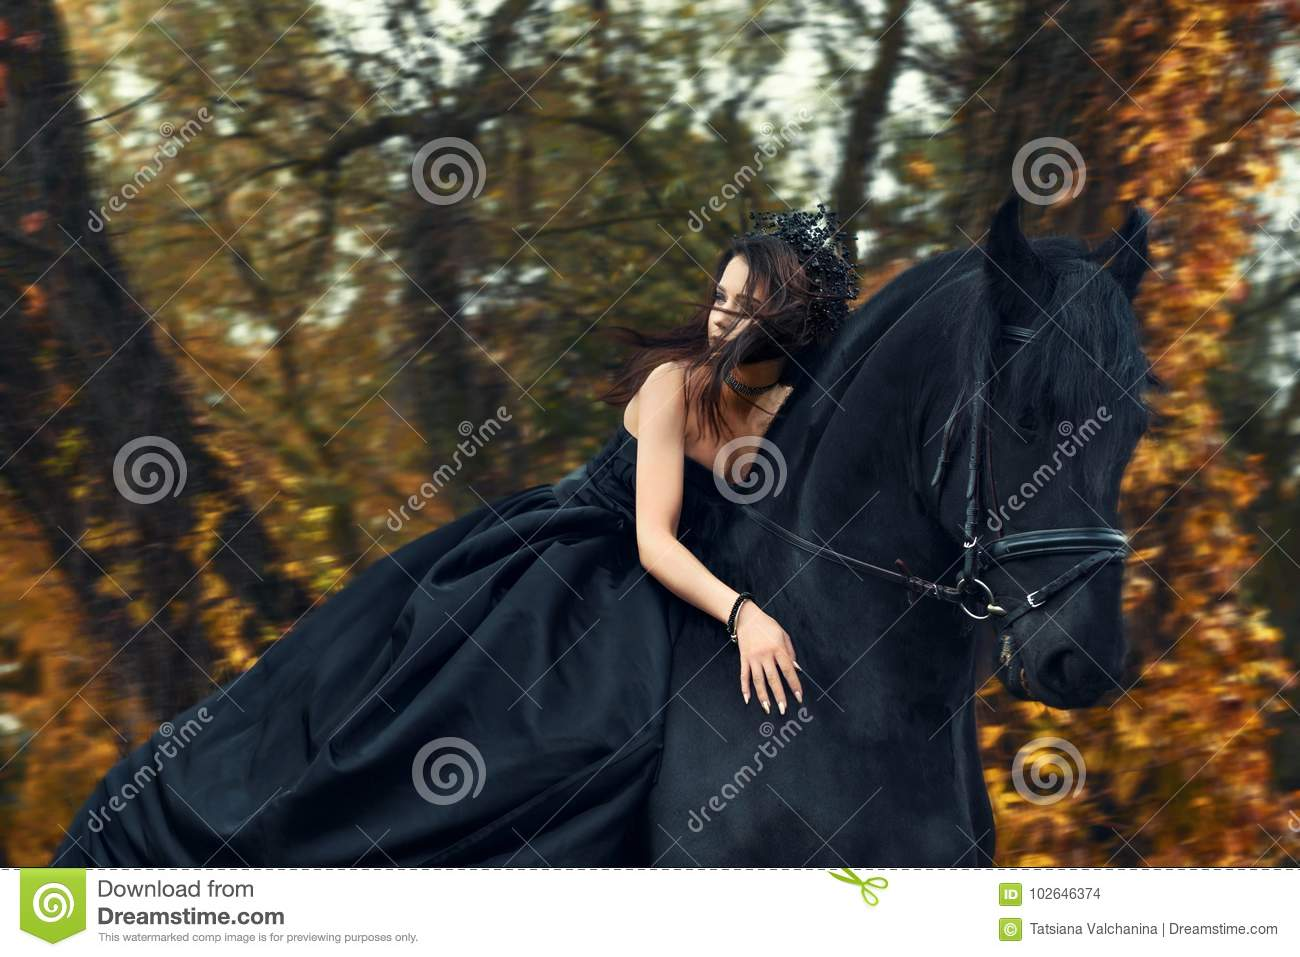 A girl black queen witch in black dress and tiara riding horseback on a  Friesian horse e907bd0b683a